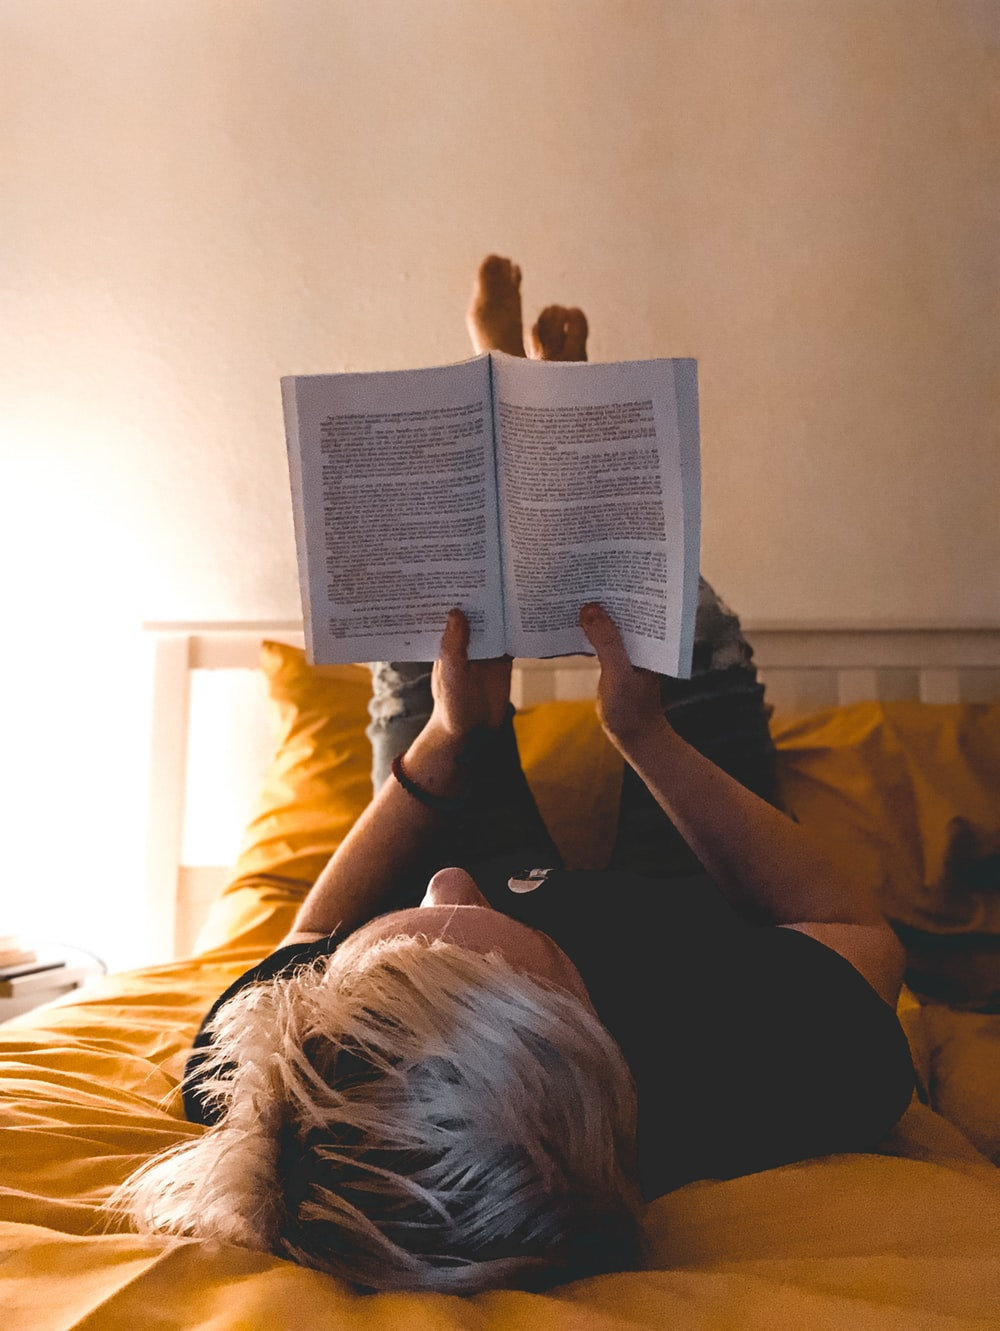 person reading book on bed